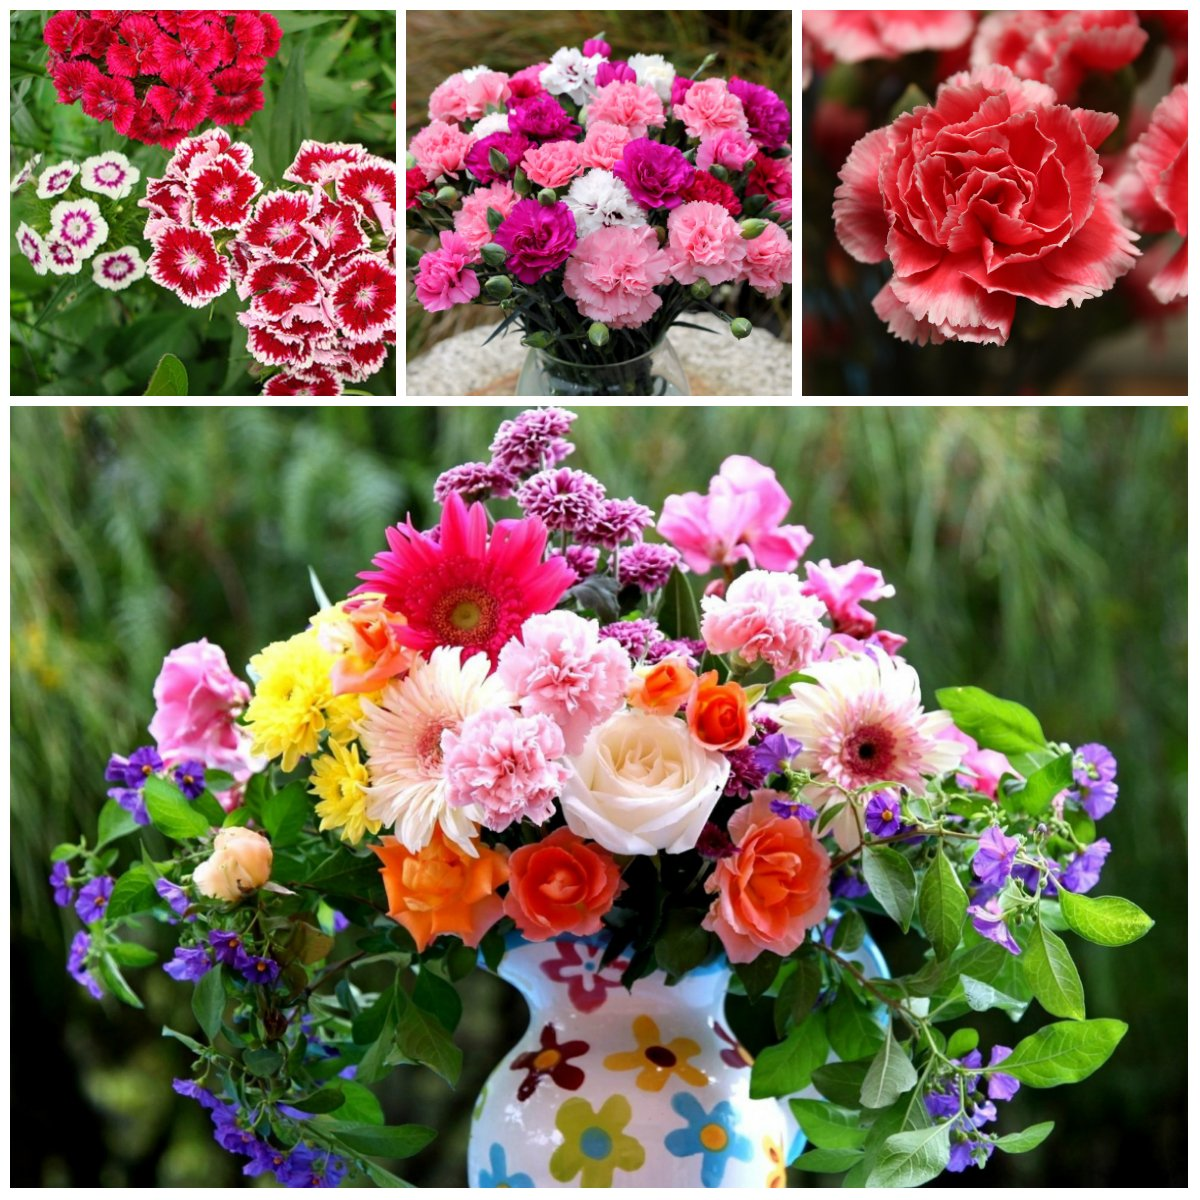 Carnations A history and meaning of the flower